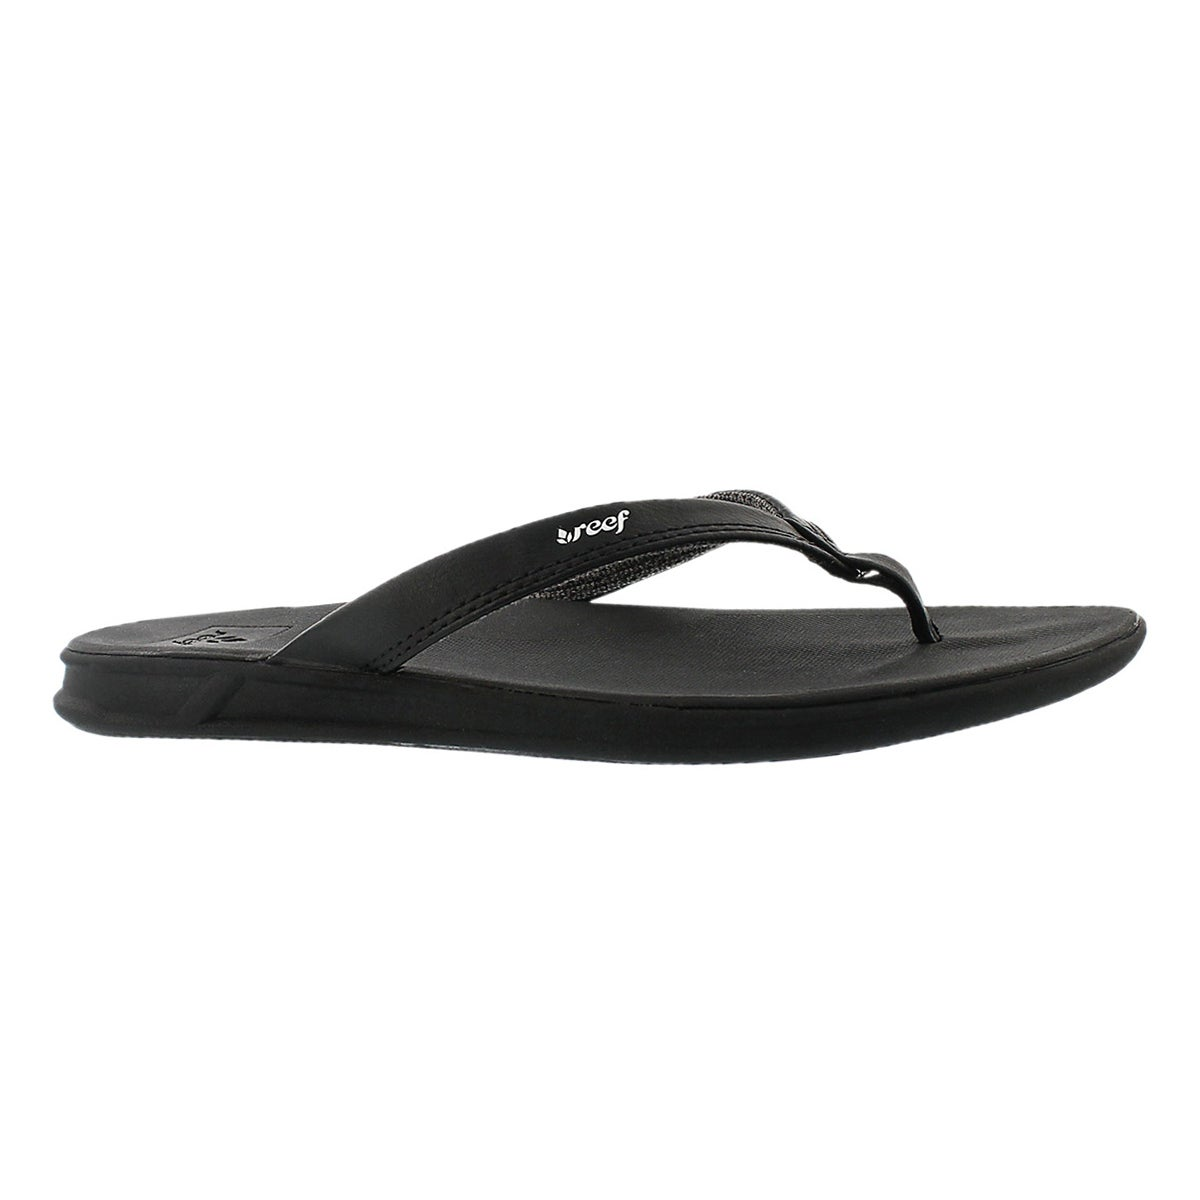 Lds Reef Rover Catch black thong sandal